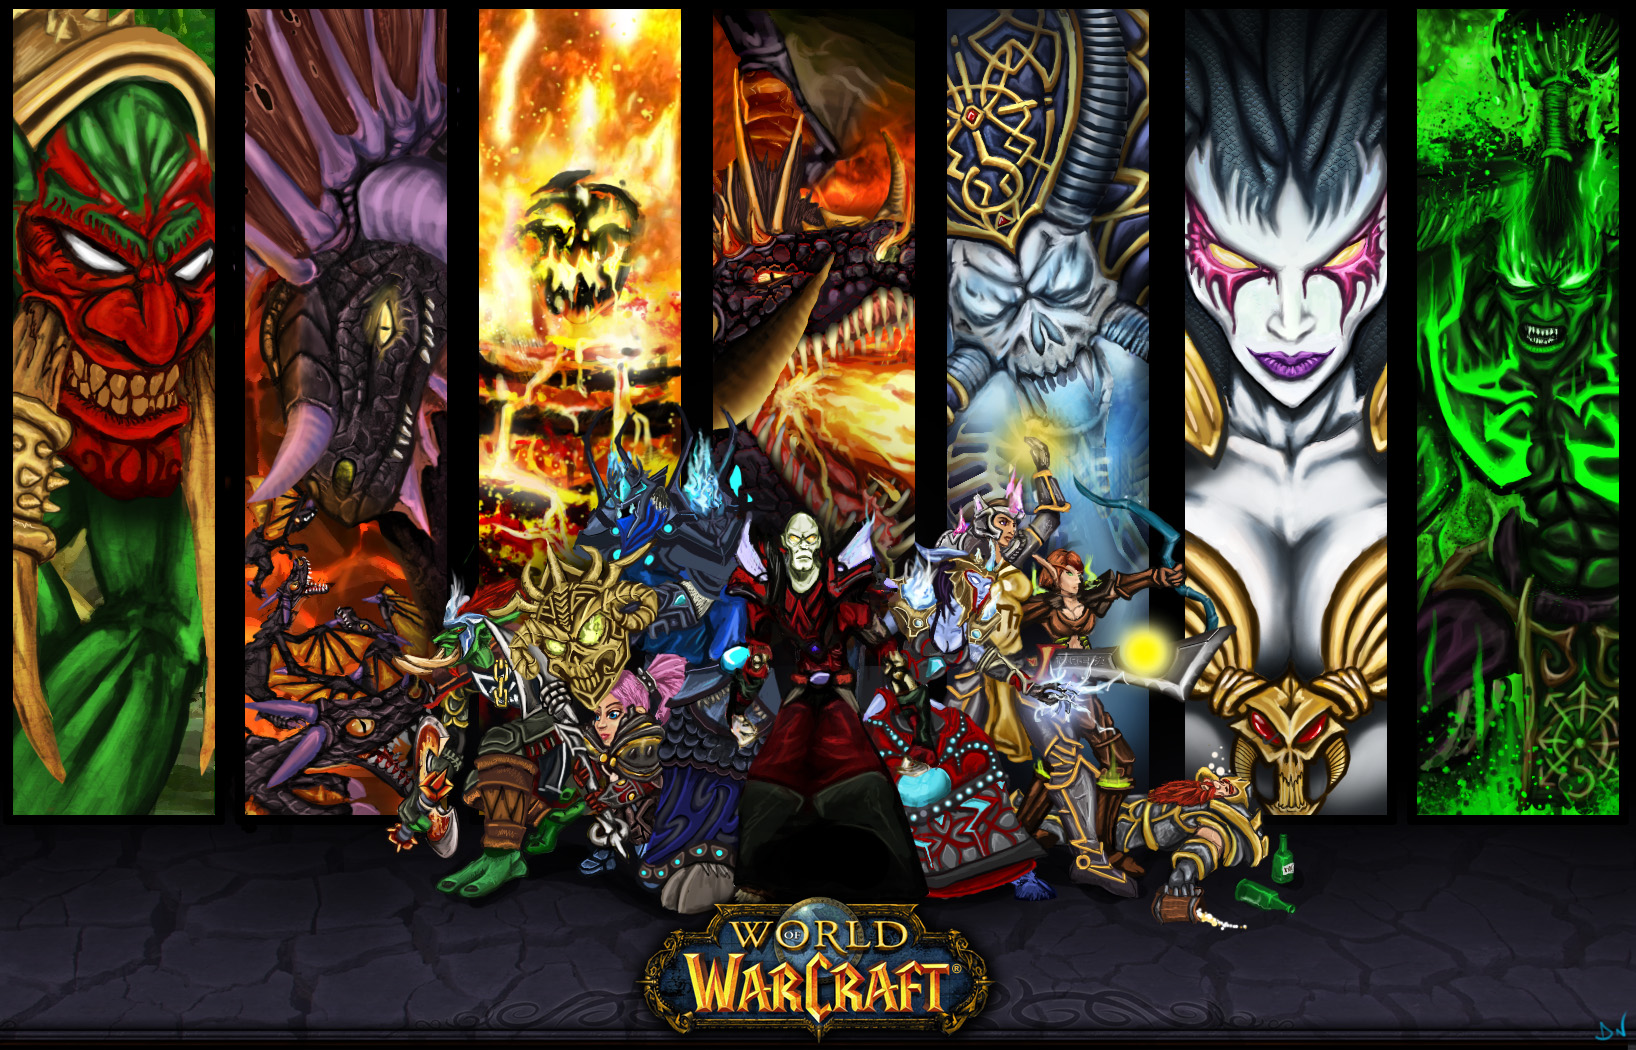 World Of Warcraft Wallpapers HD #7443 Wallpaper | Cool ...